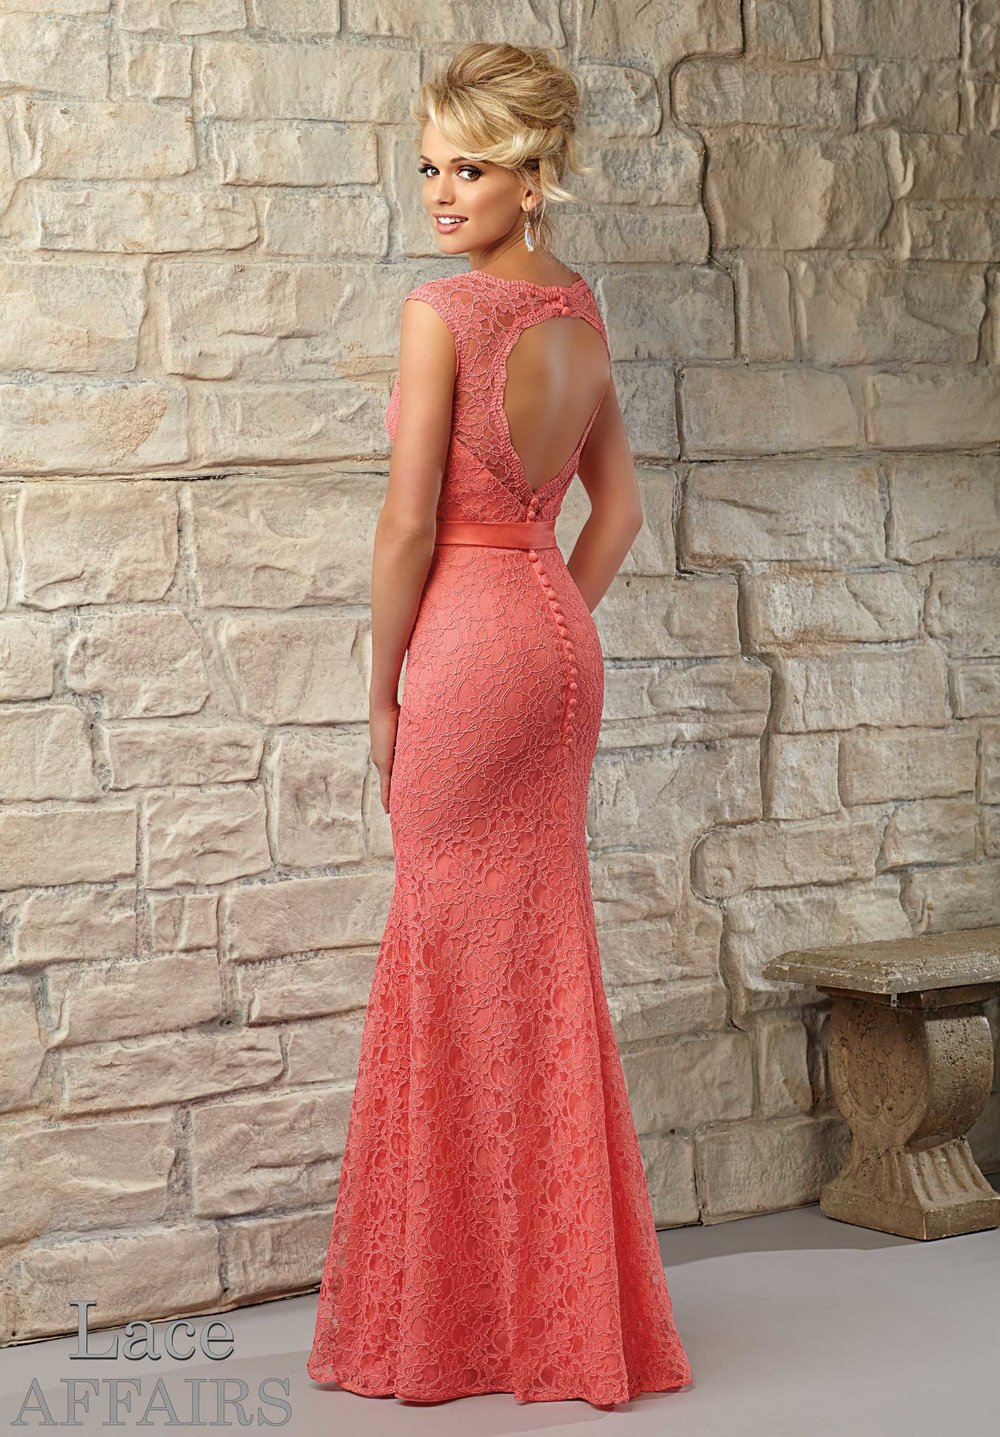 Keyhole Romantic Lace Bridesmaids Dress